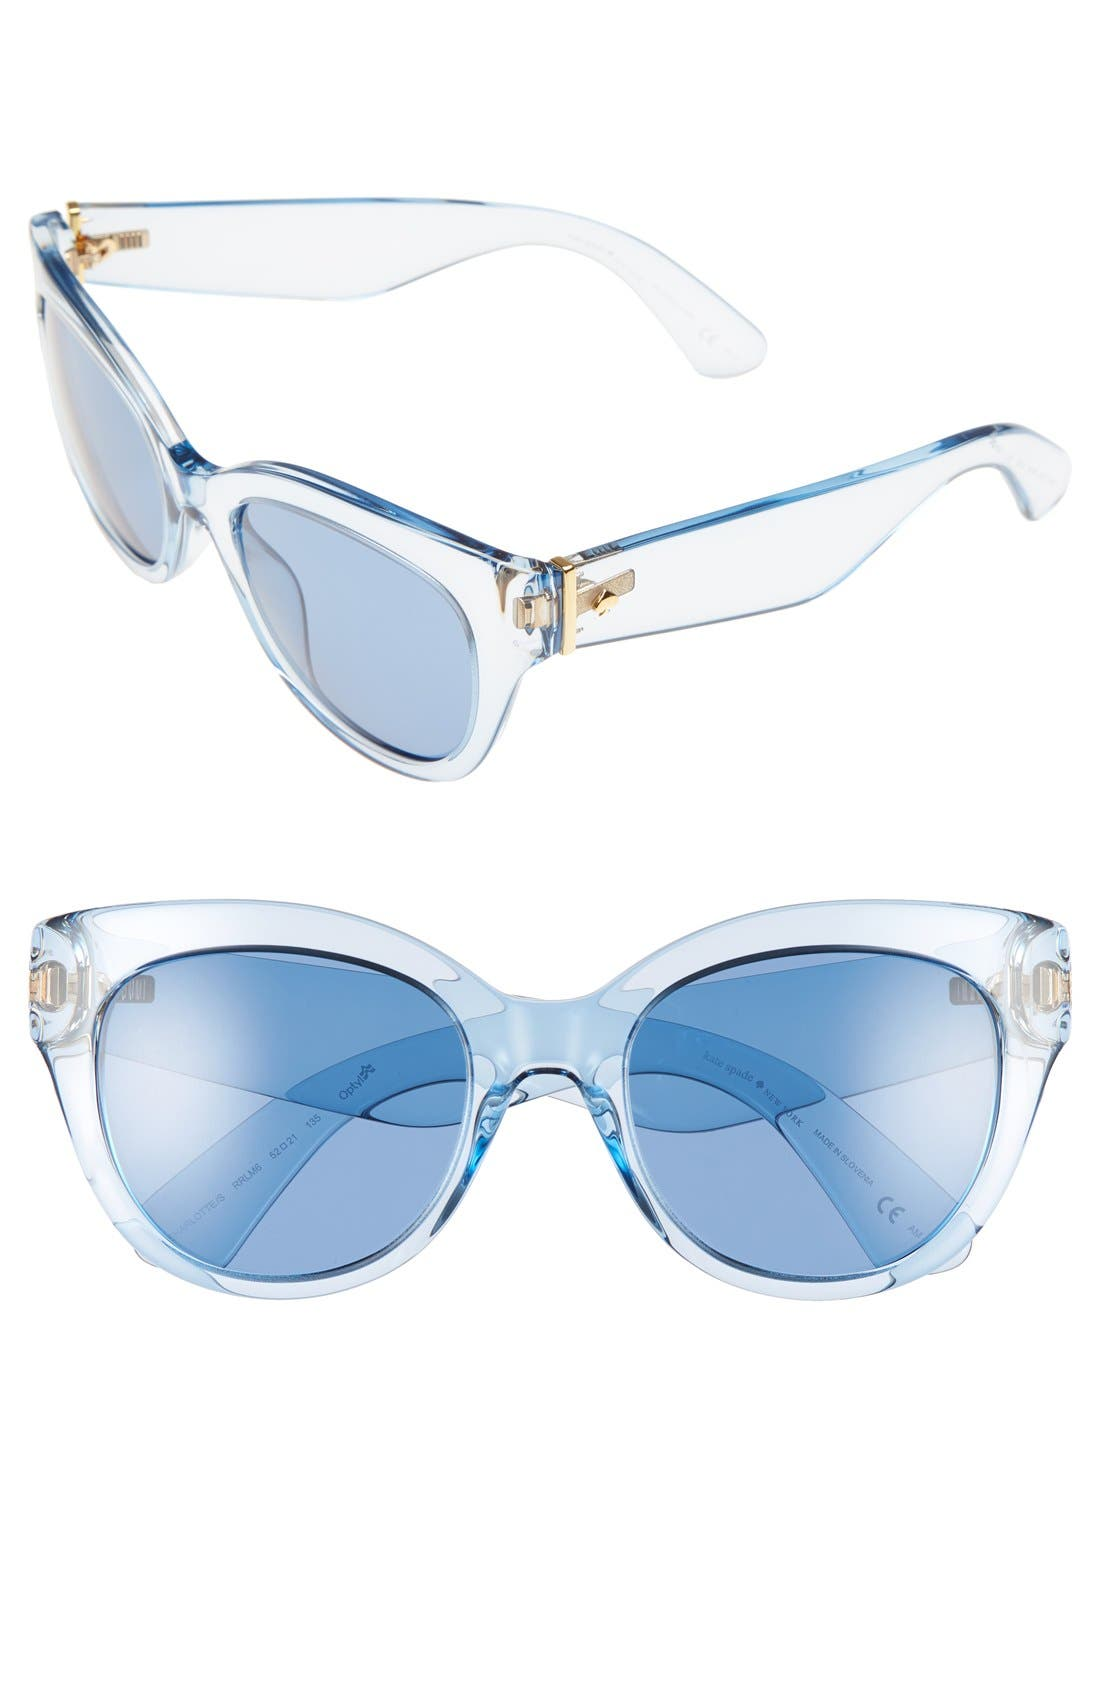 Main Image - kate spade new york 'sharlots' 52mm sunglasses